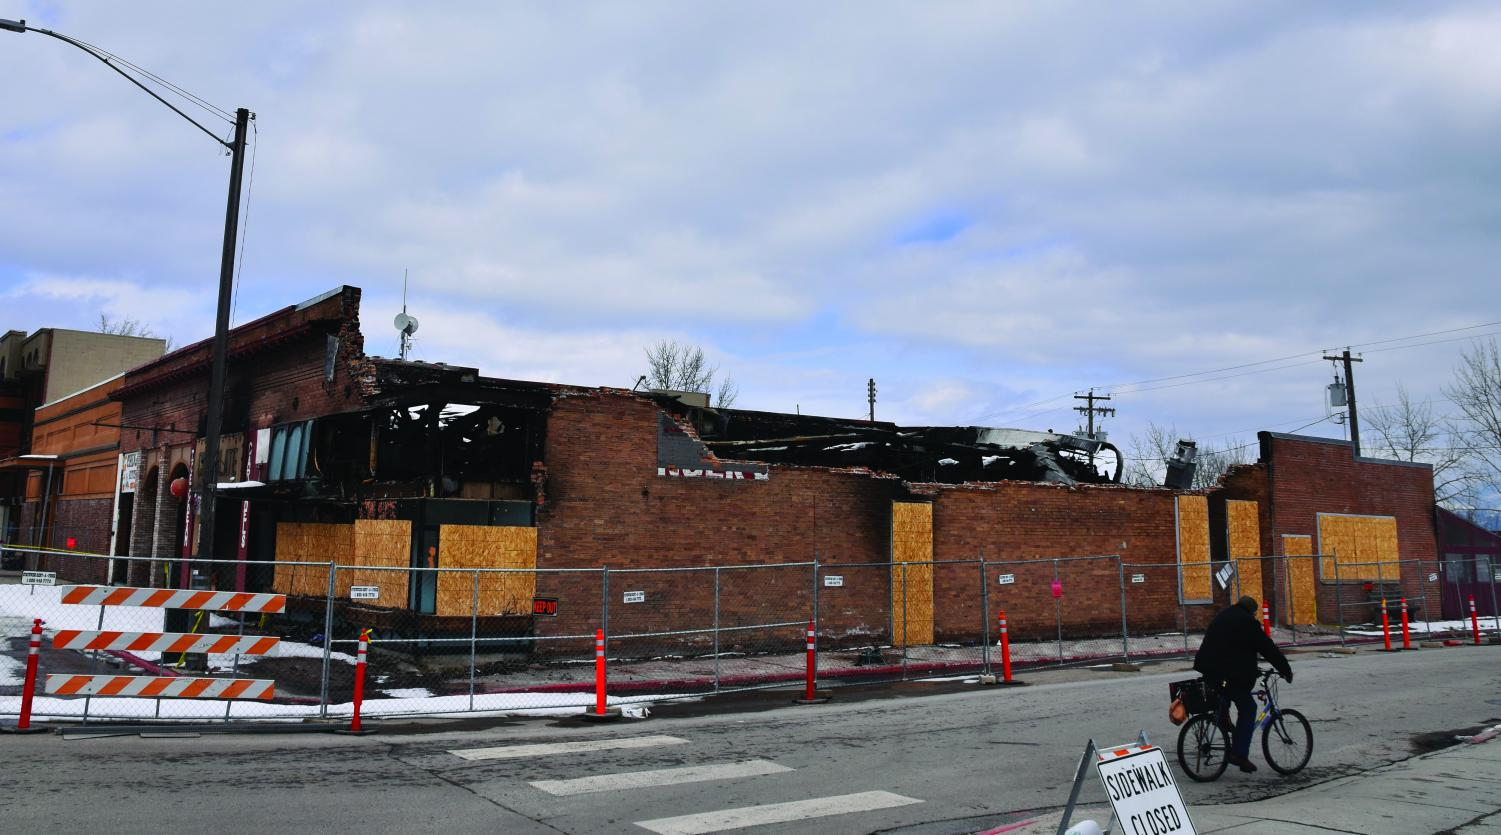 Access to all four of the businesses that suffered from the fire on February 12th are fenced off for safety reasons until the buildings can be torn down and rebuilt safely.